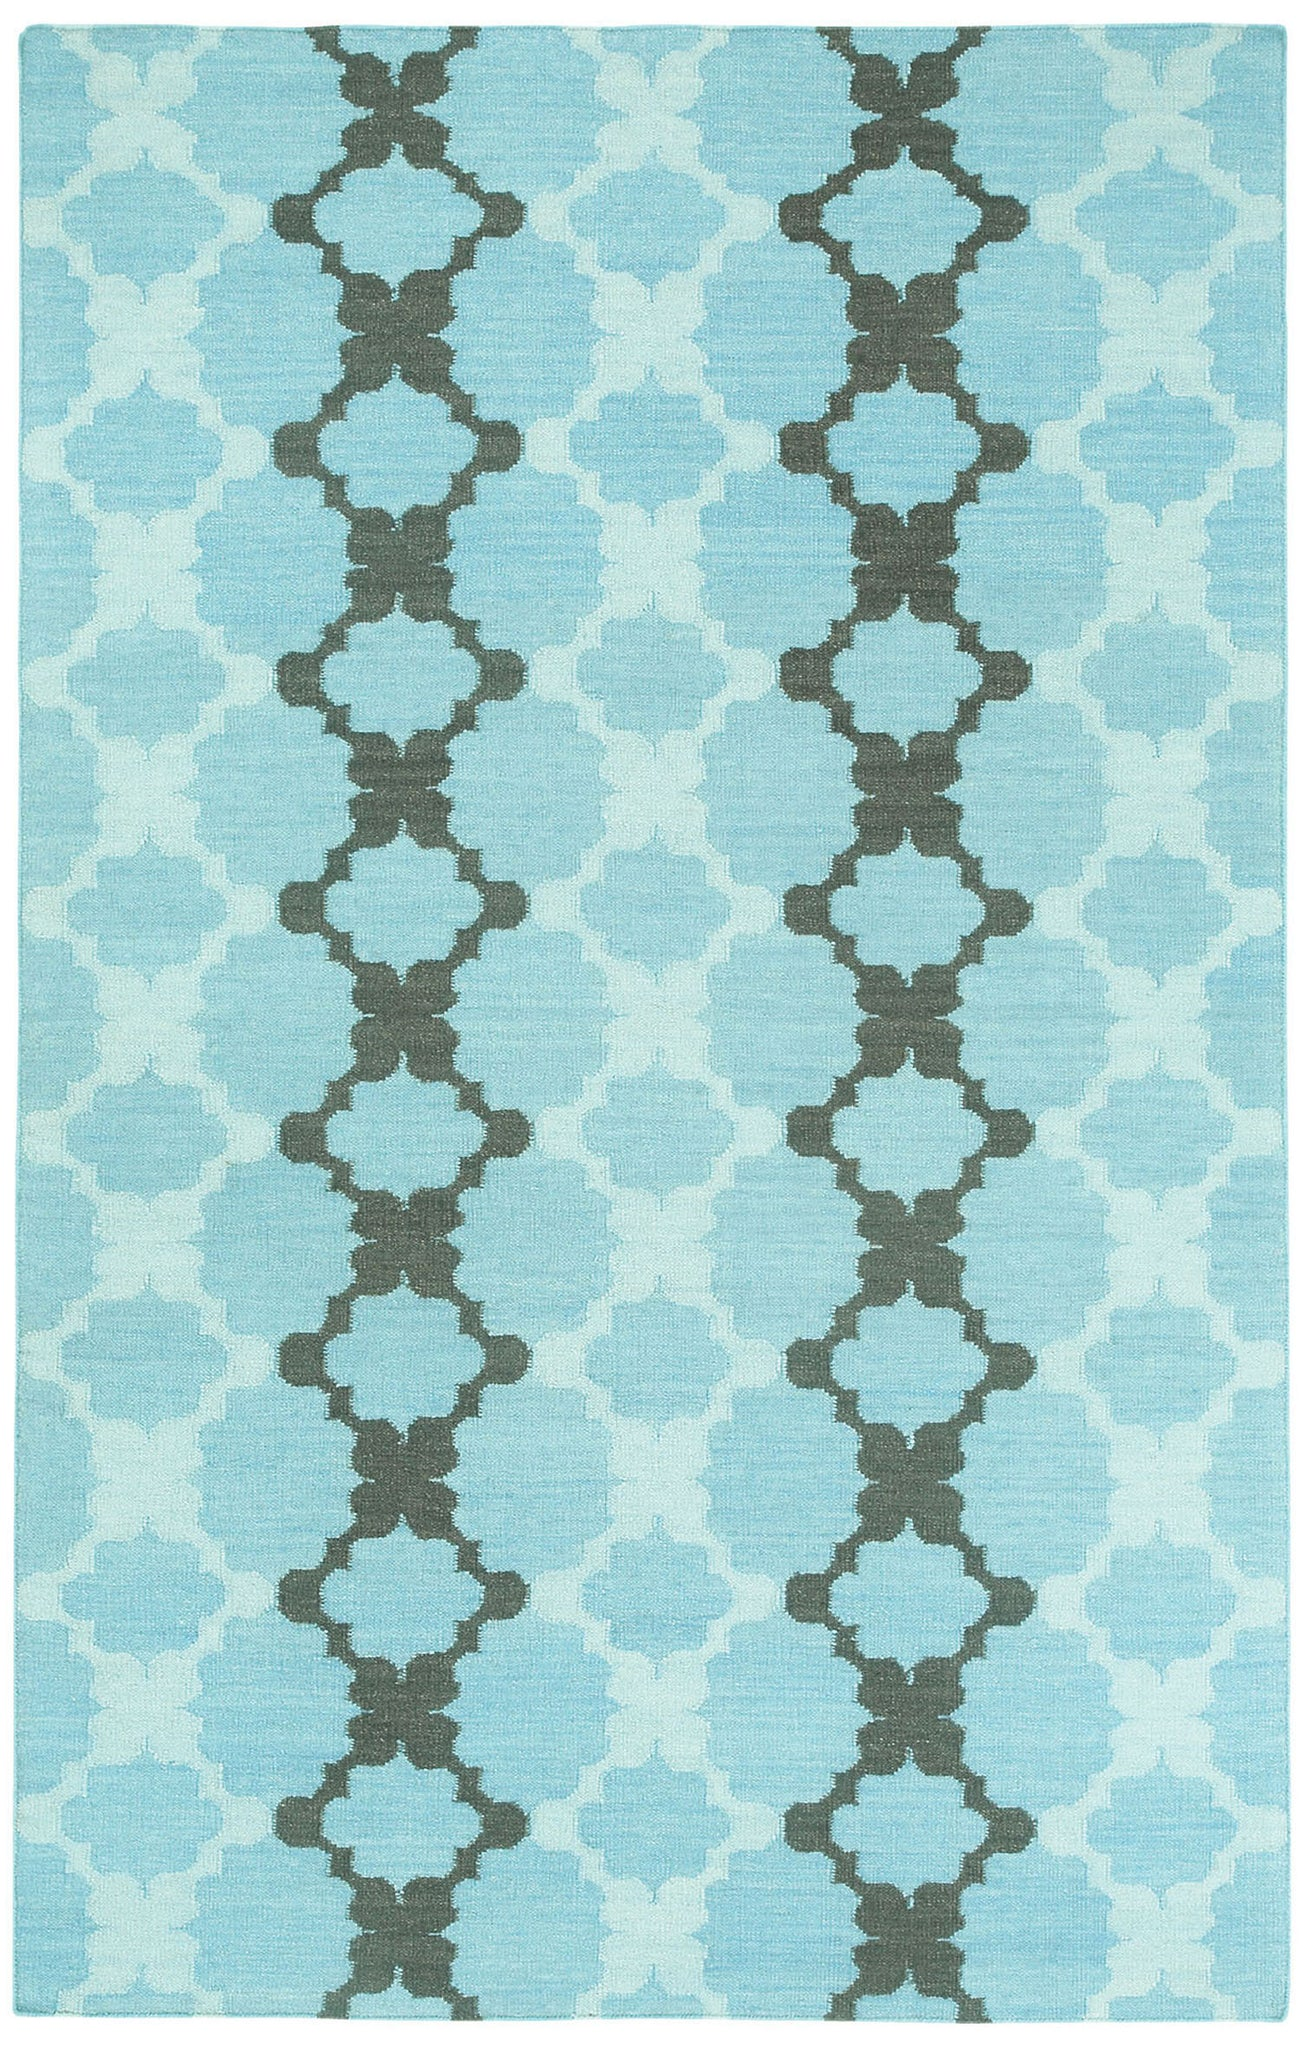 Capel Coastline 3666 Ocean Chestnut 475 Area Rug main image